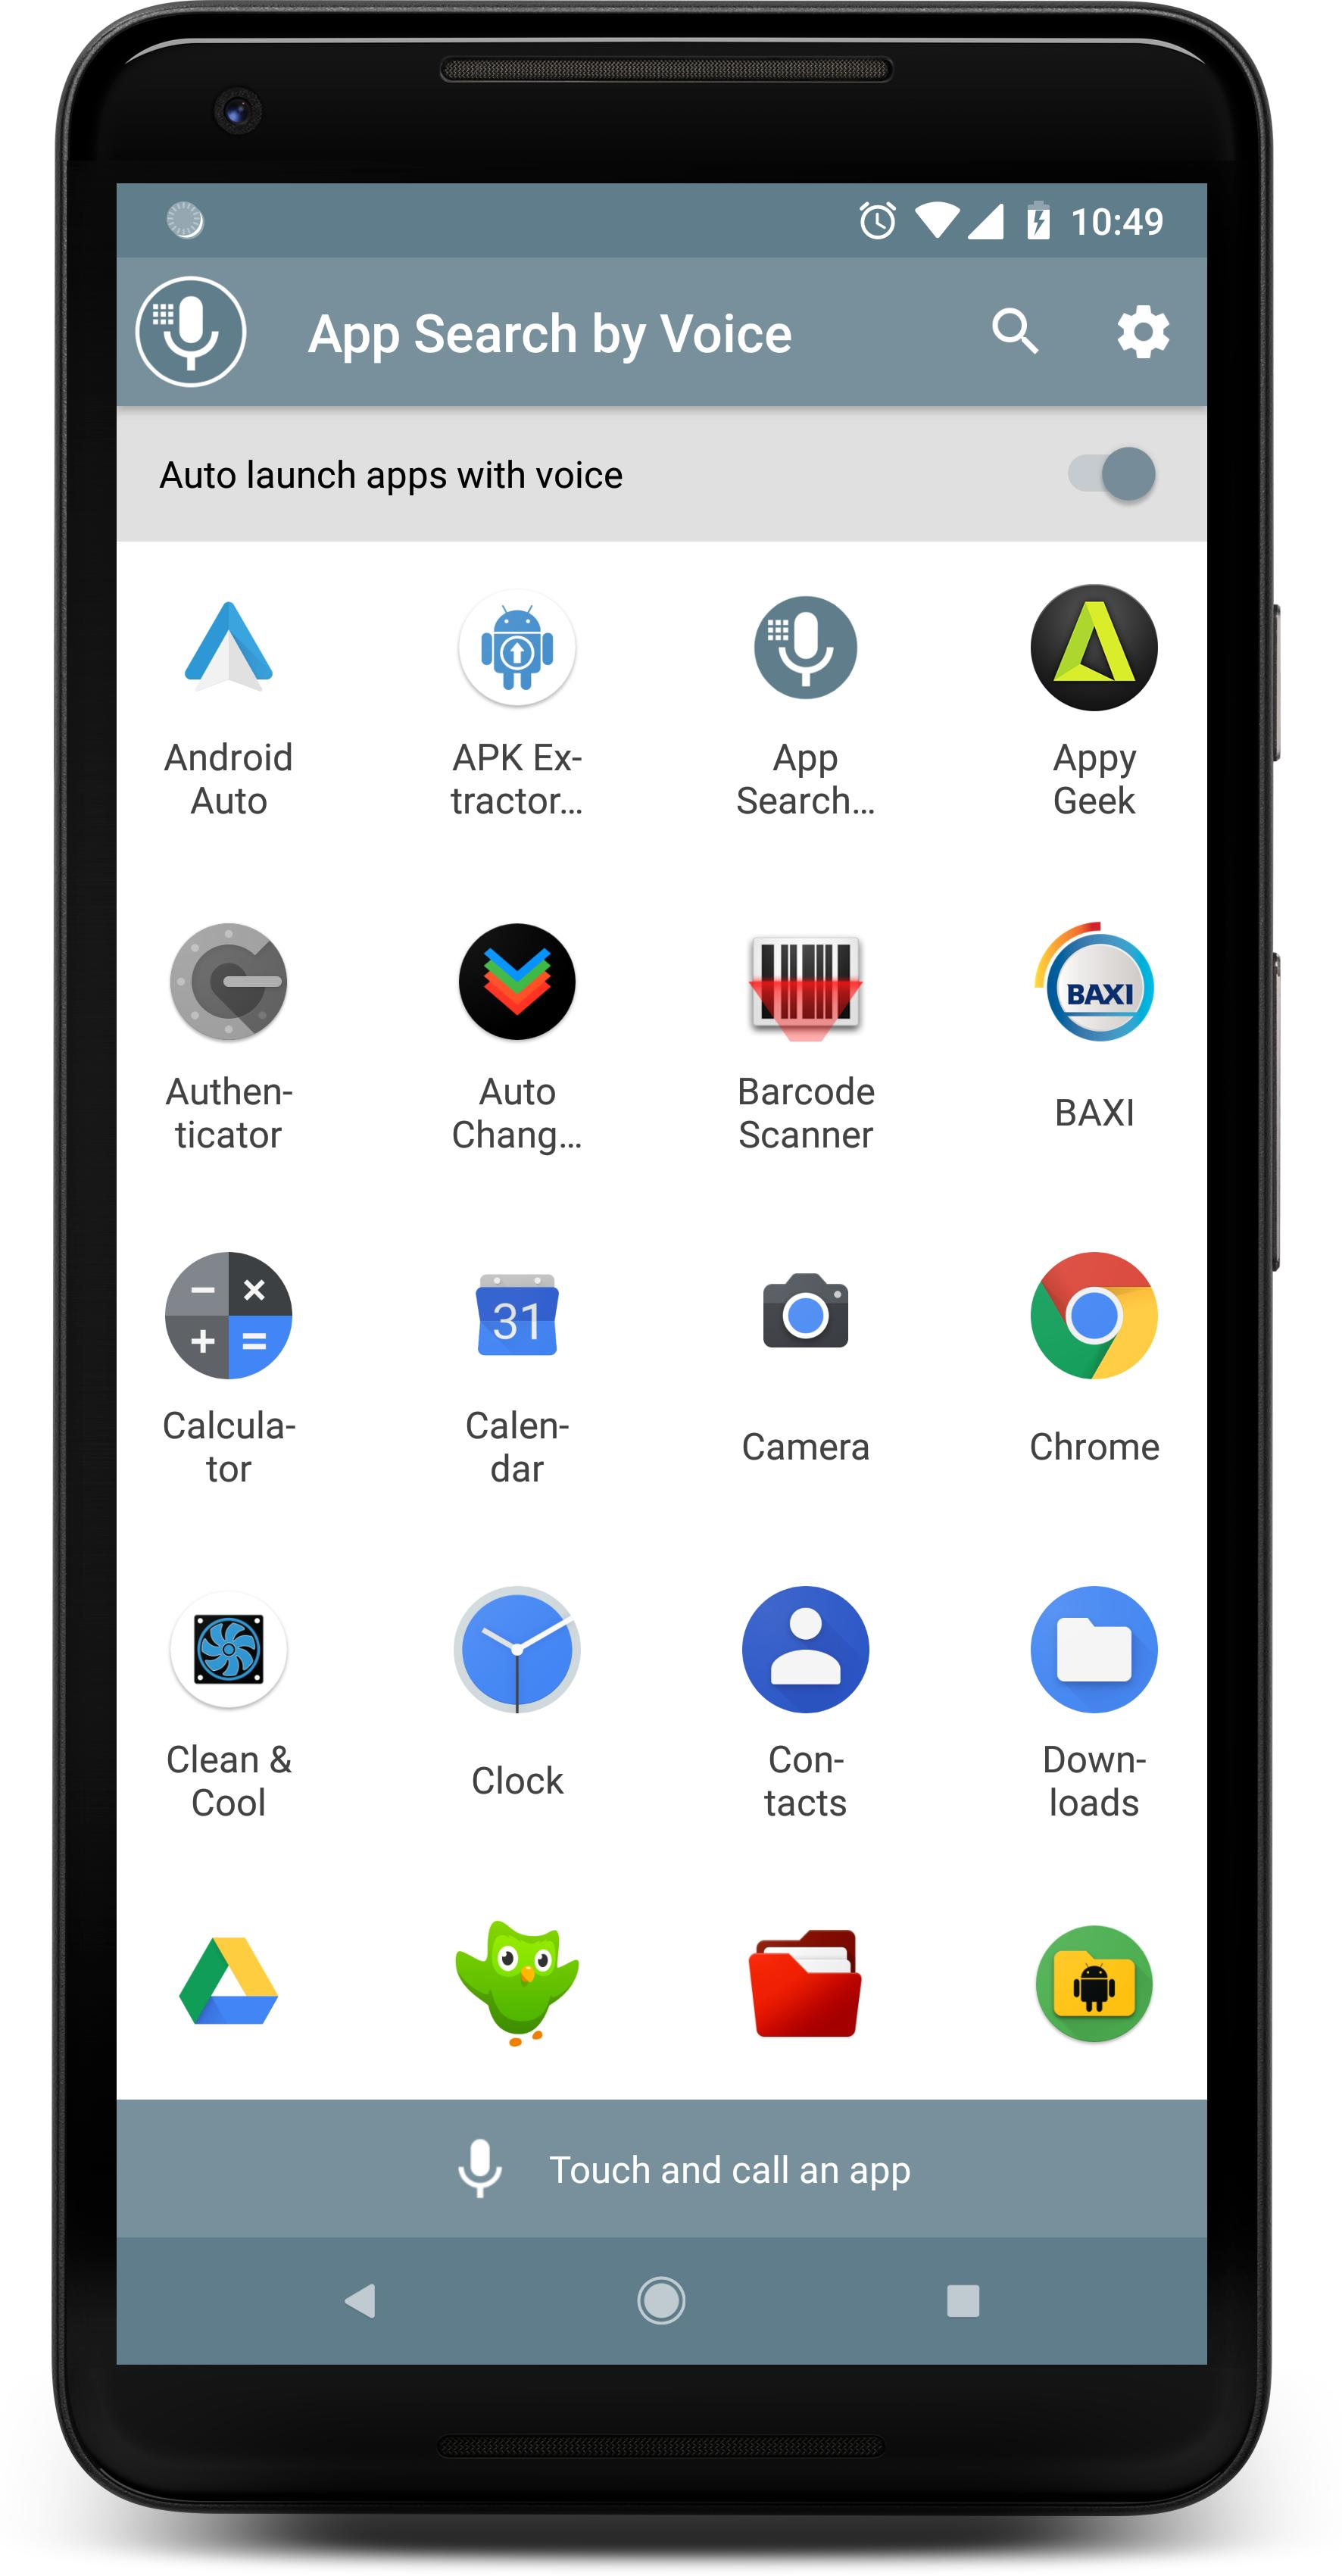 APP SEARCH BY VOICE for Android - APK Download